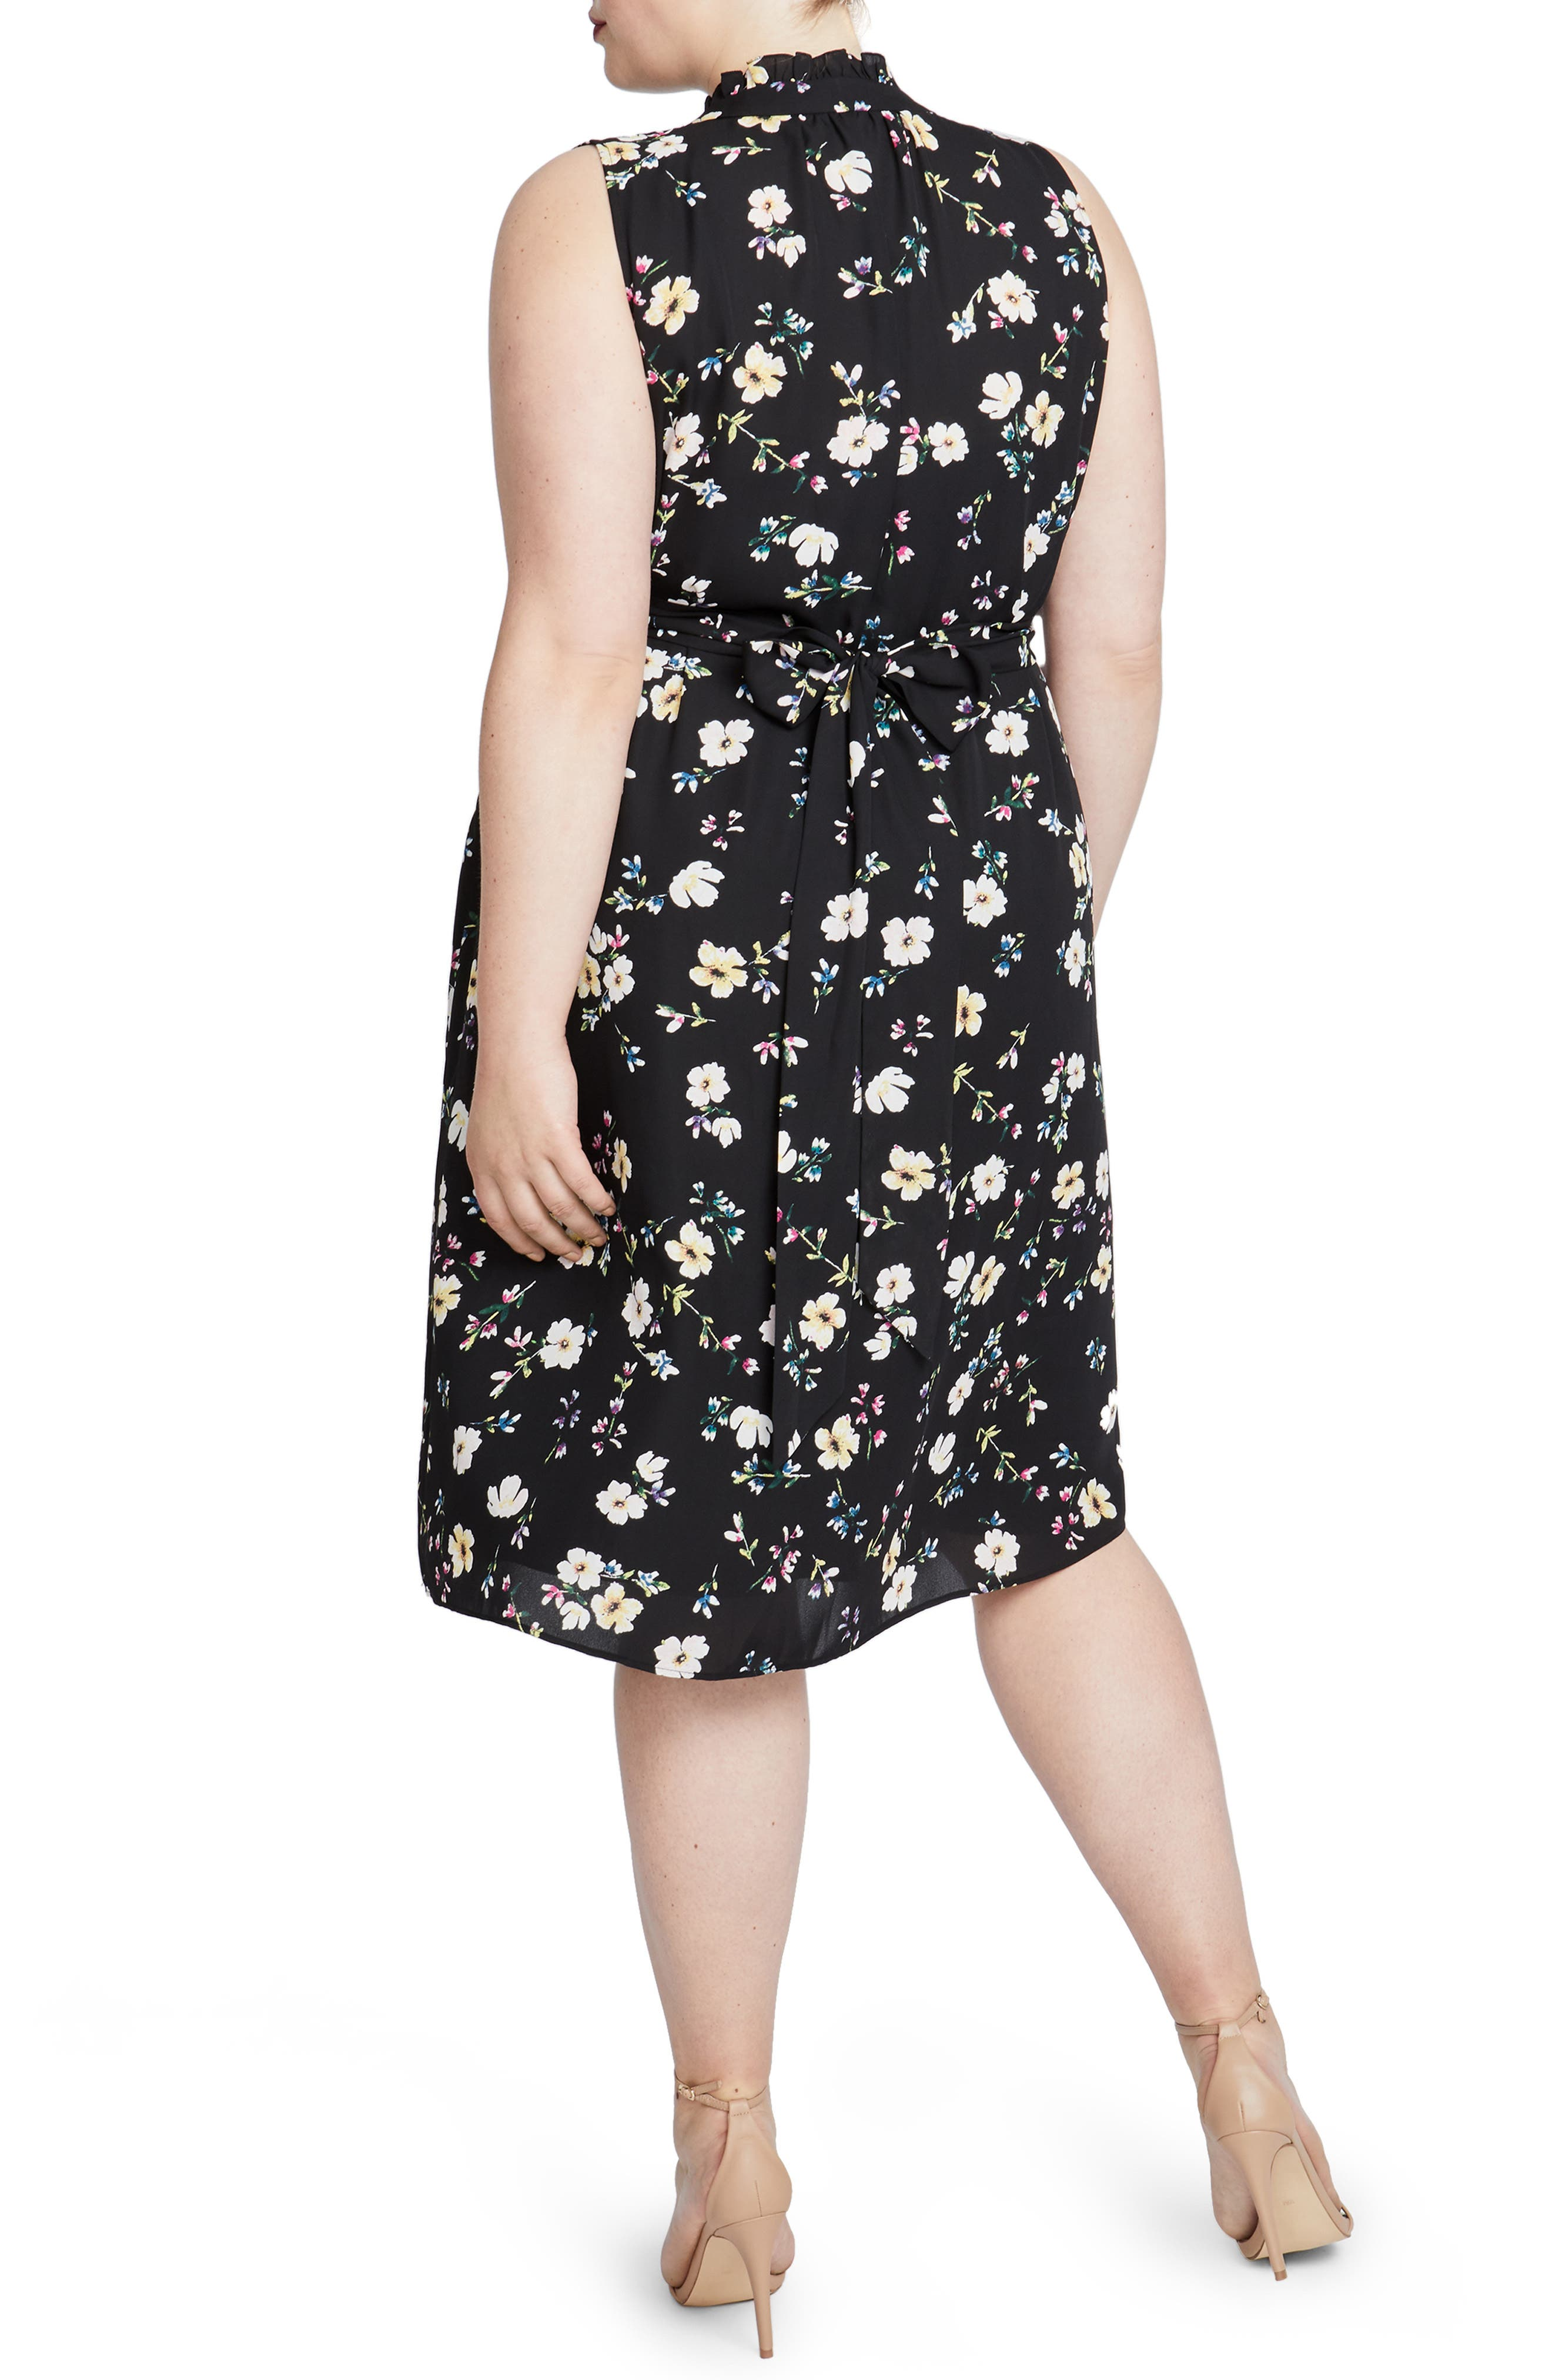 Brit Sleeveless Floral Dress,                             Alternate thumbnail 2, color,                             001